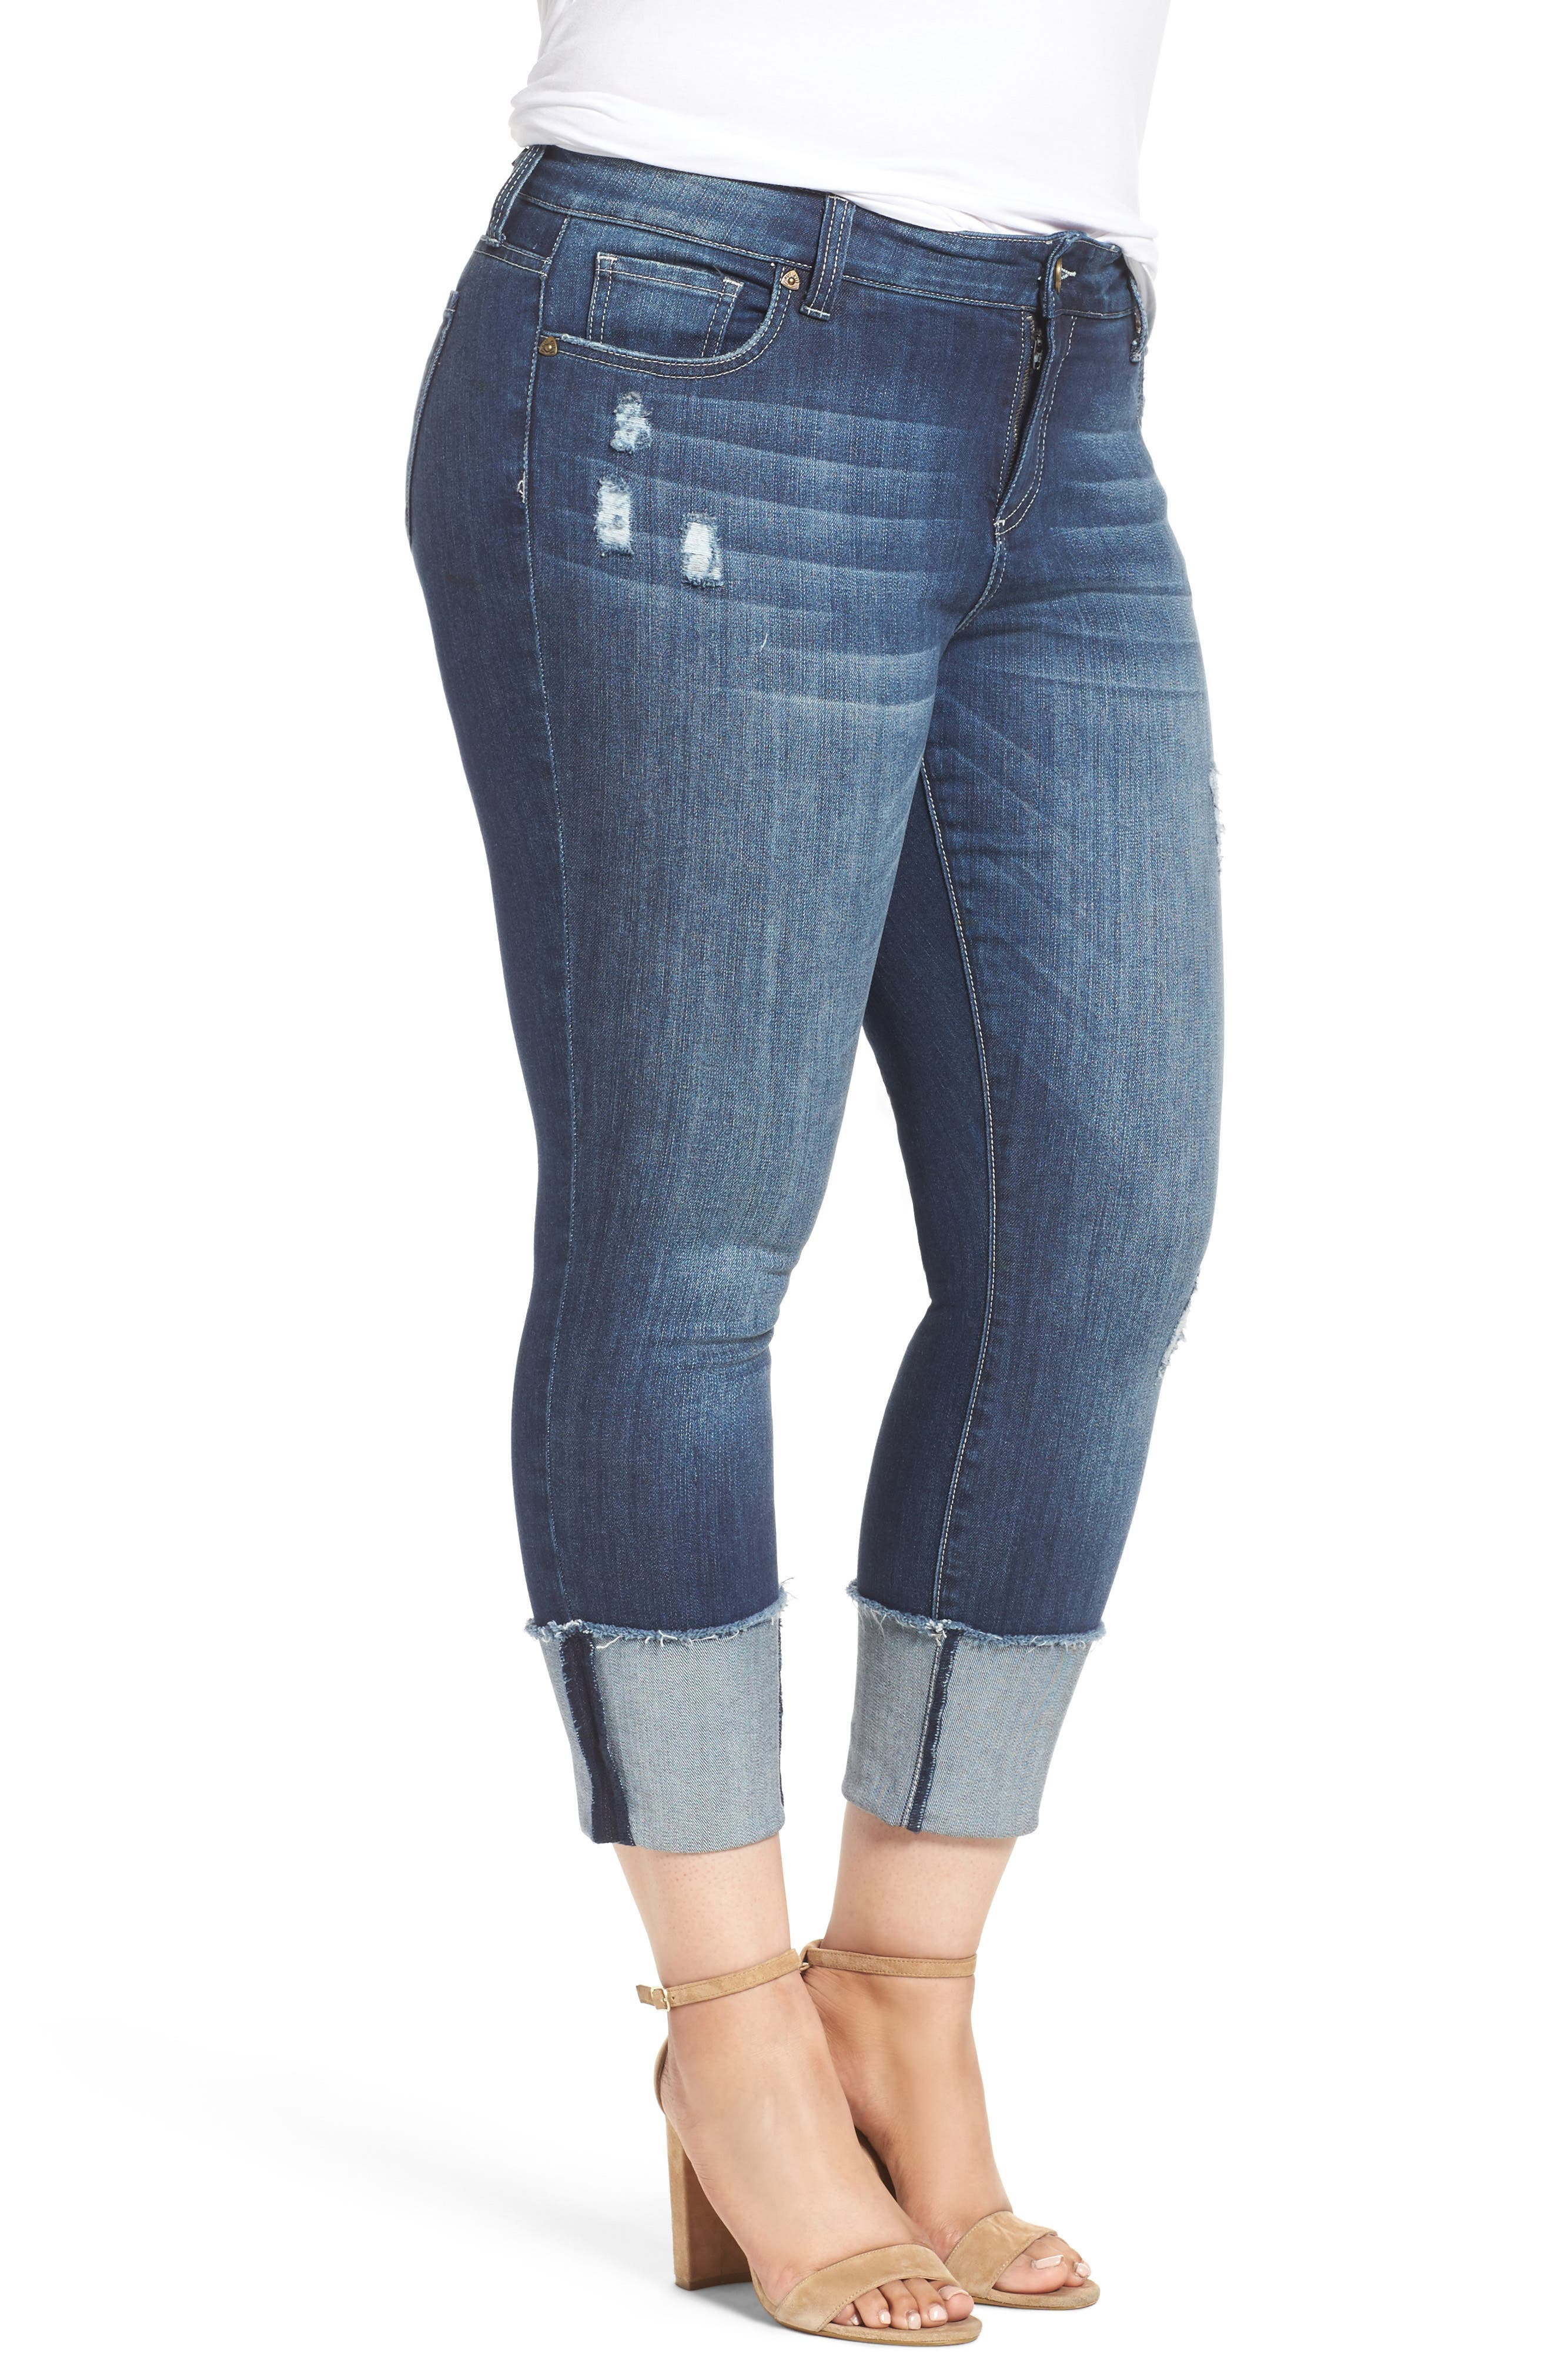 Alternate Image 3  - KUT from the Kloth Cameron Cuffed Straight Leg Jeans (Arresting) (Plus Size)